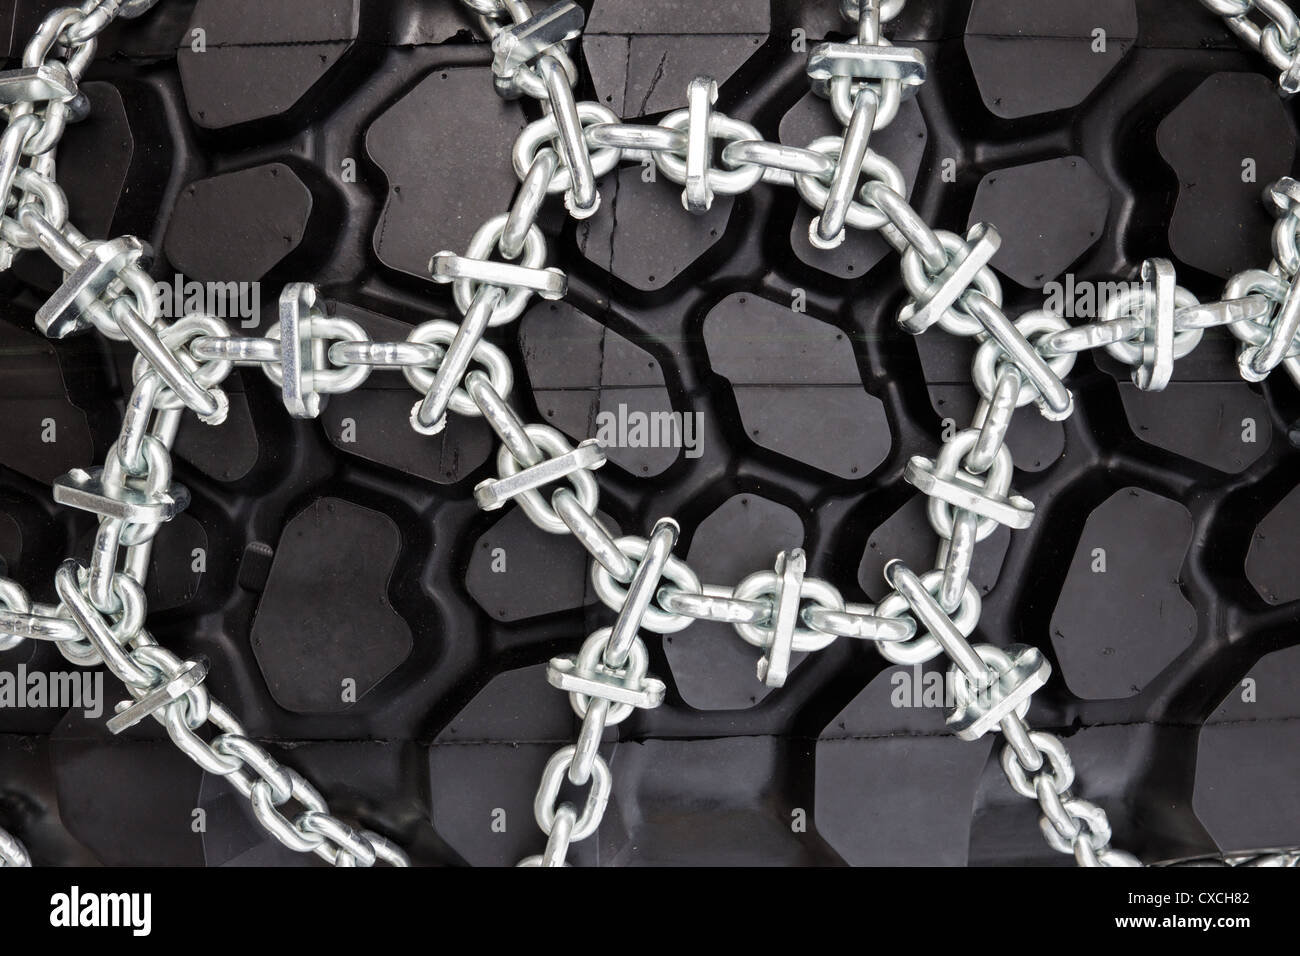 Large truck tire with snow chains - Stock Image